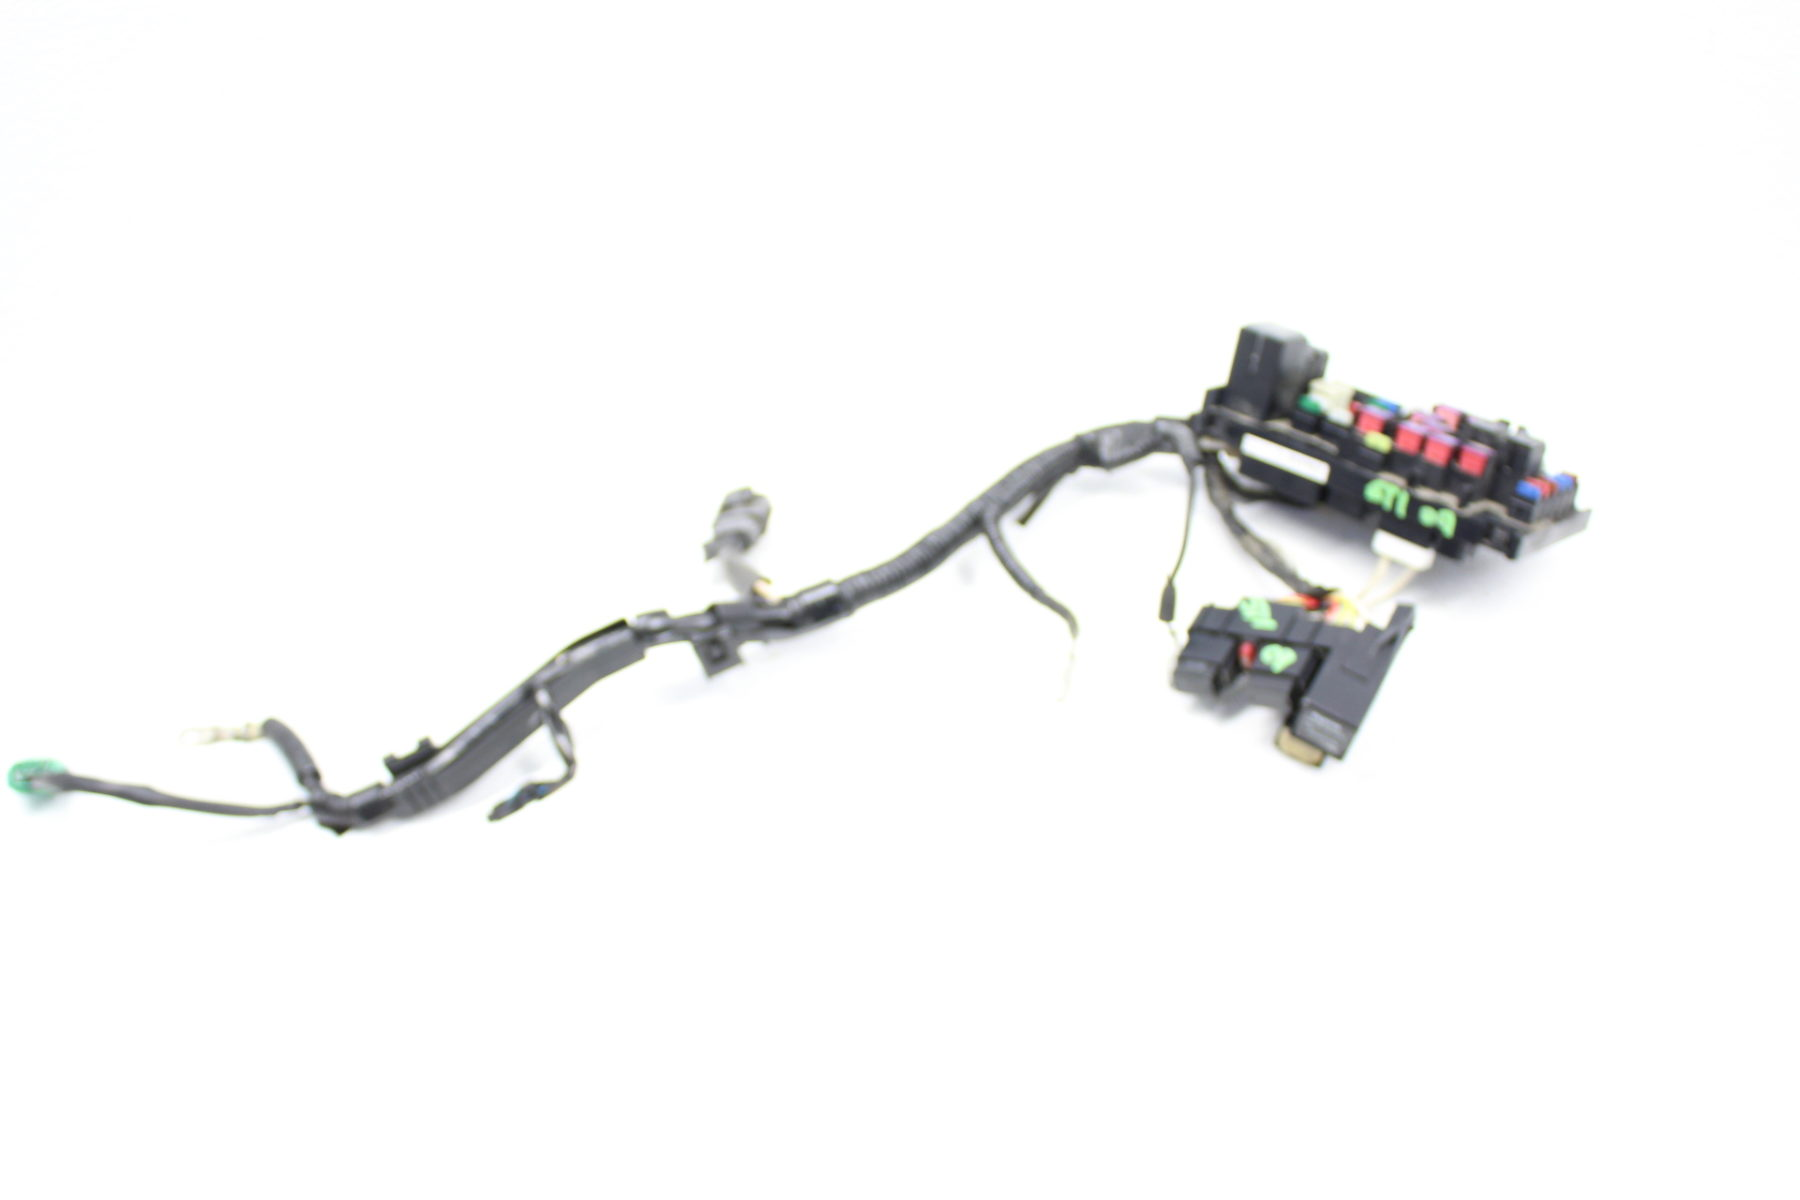 2008-2014 SUBARU WRX & STI FUSE BOX WIRE WIRING HARNESS